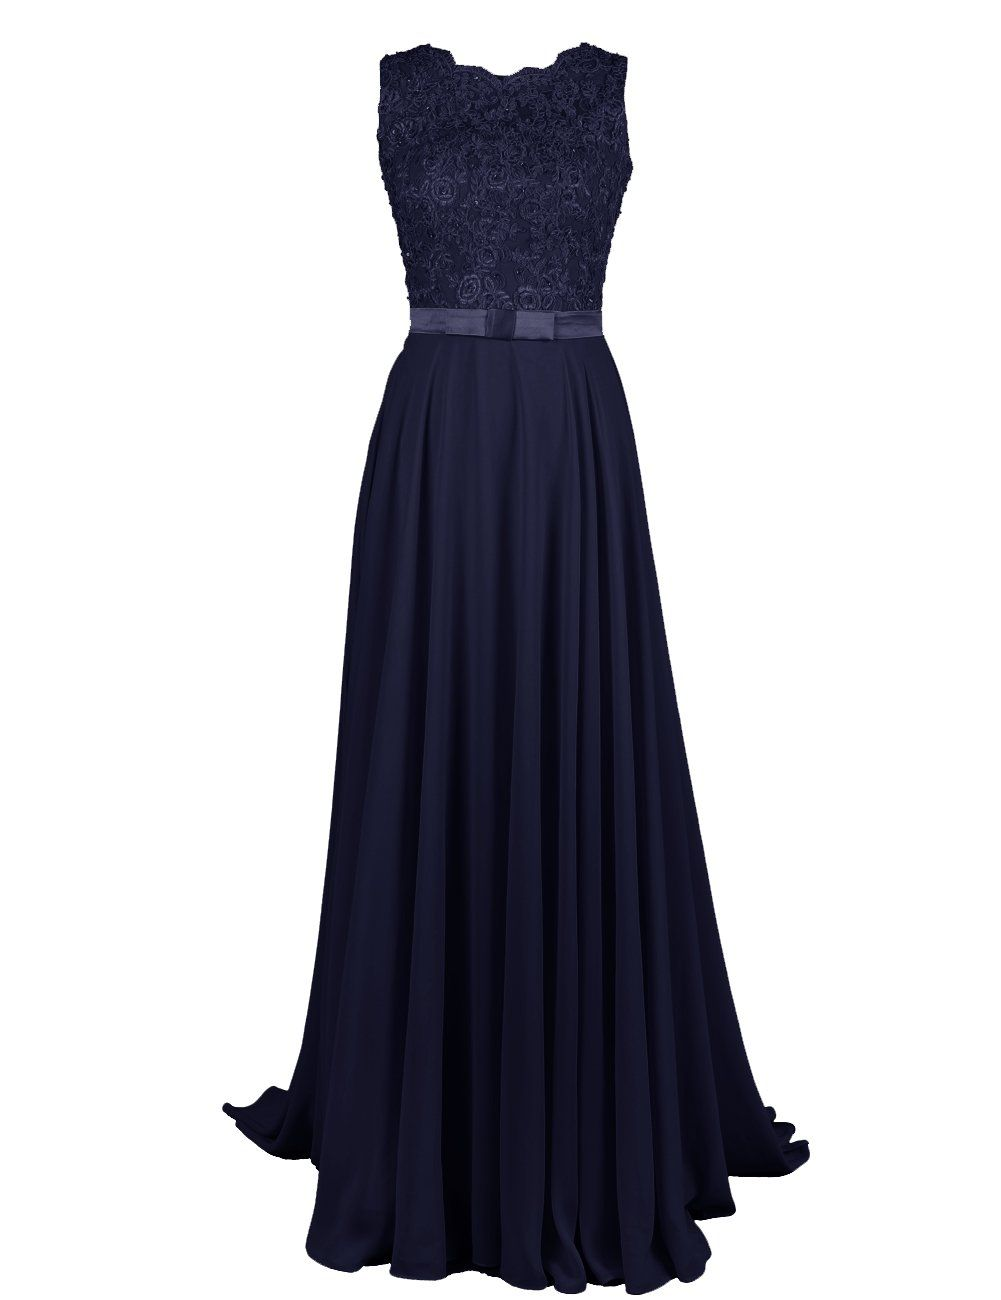 Dressystar long bridesmaid lace appliques prom dresses scoop party